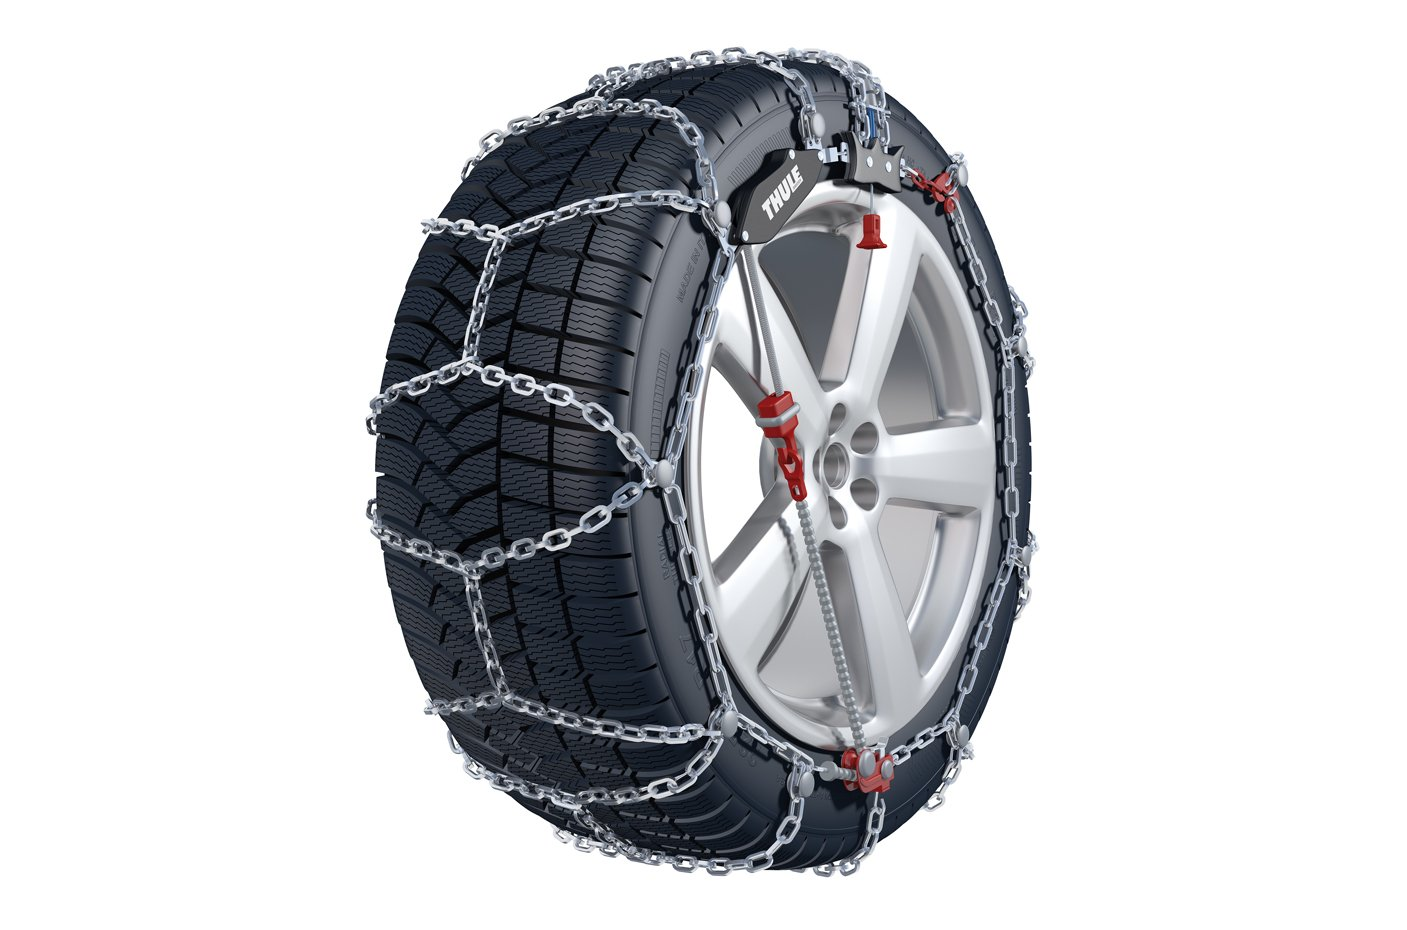 Kö nig XS-16 225 Snow chains, set of 2 Thule 2004605225